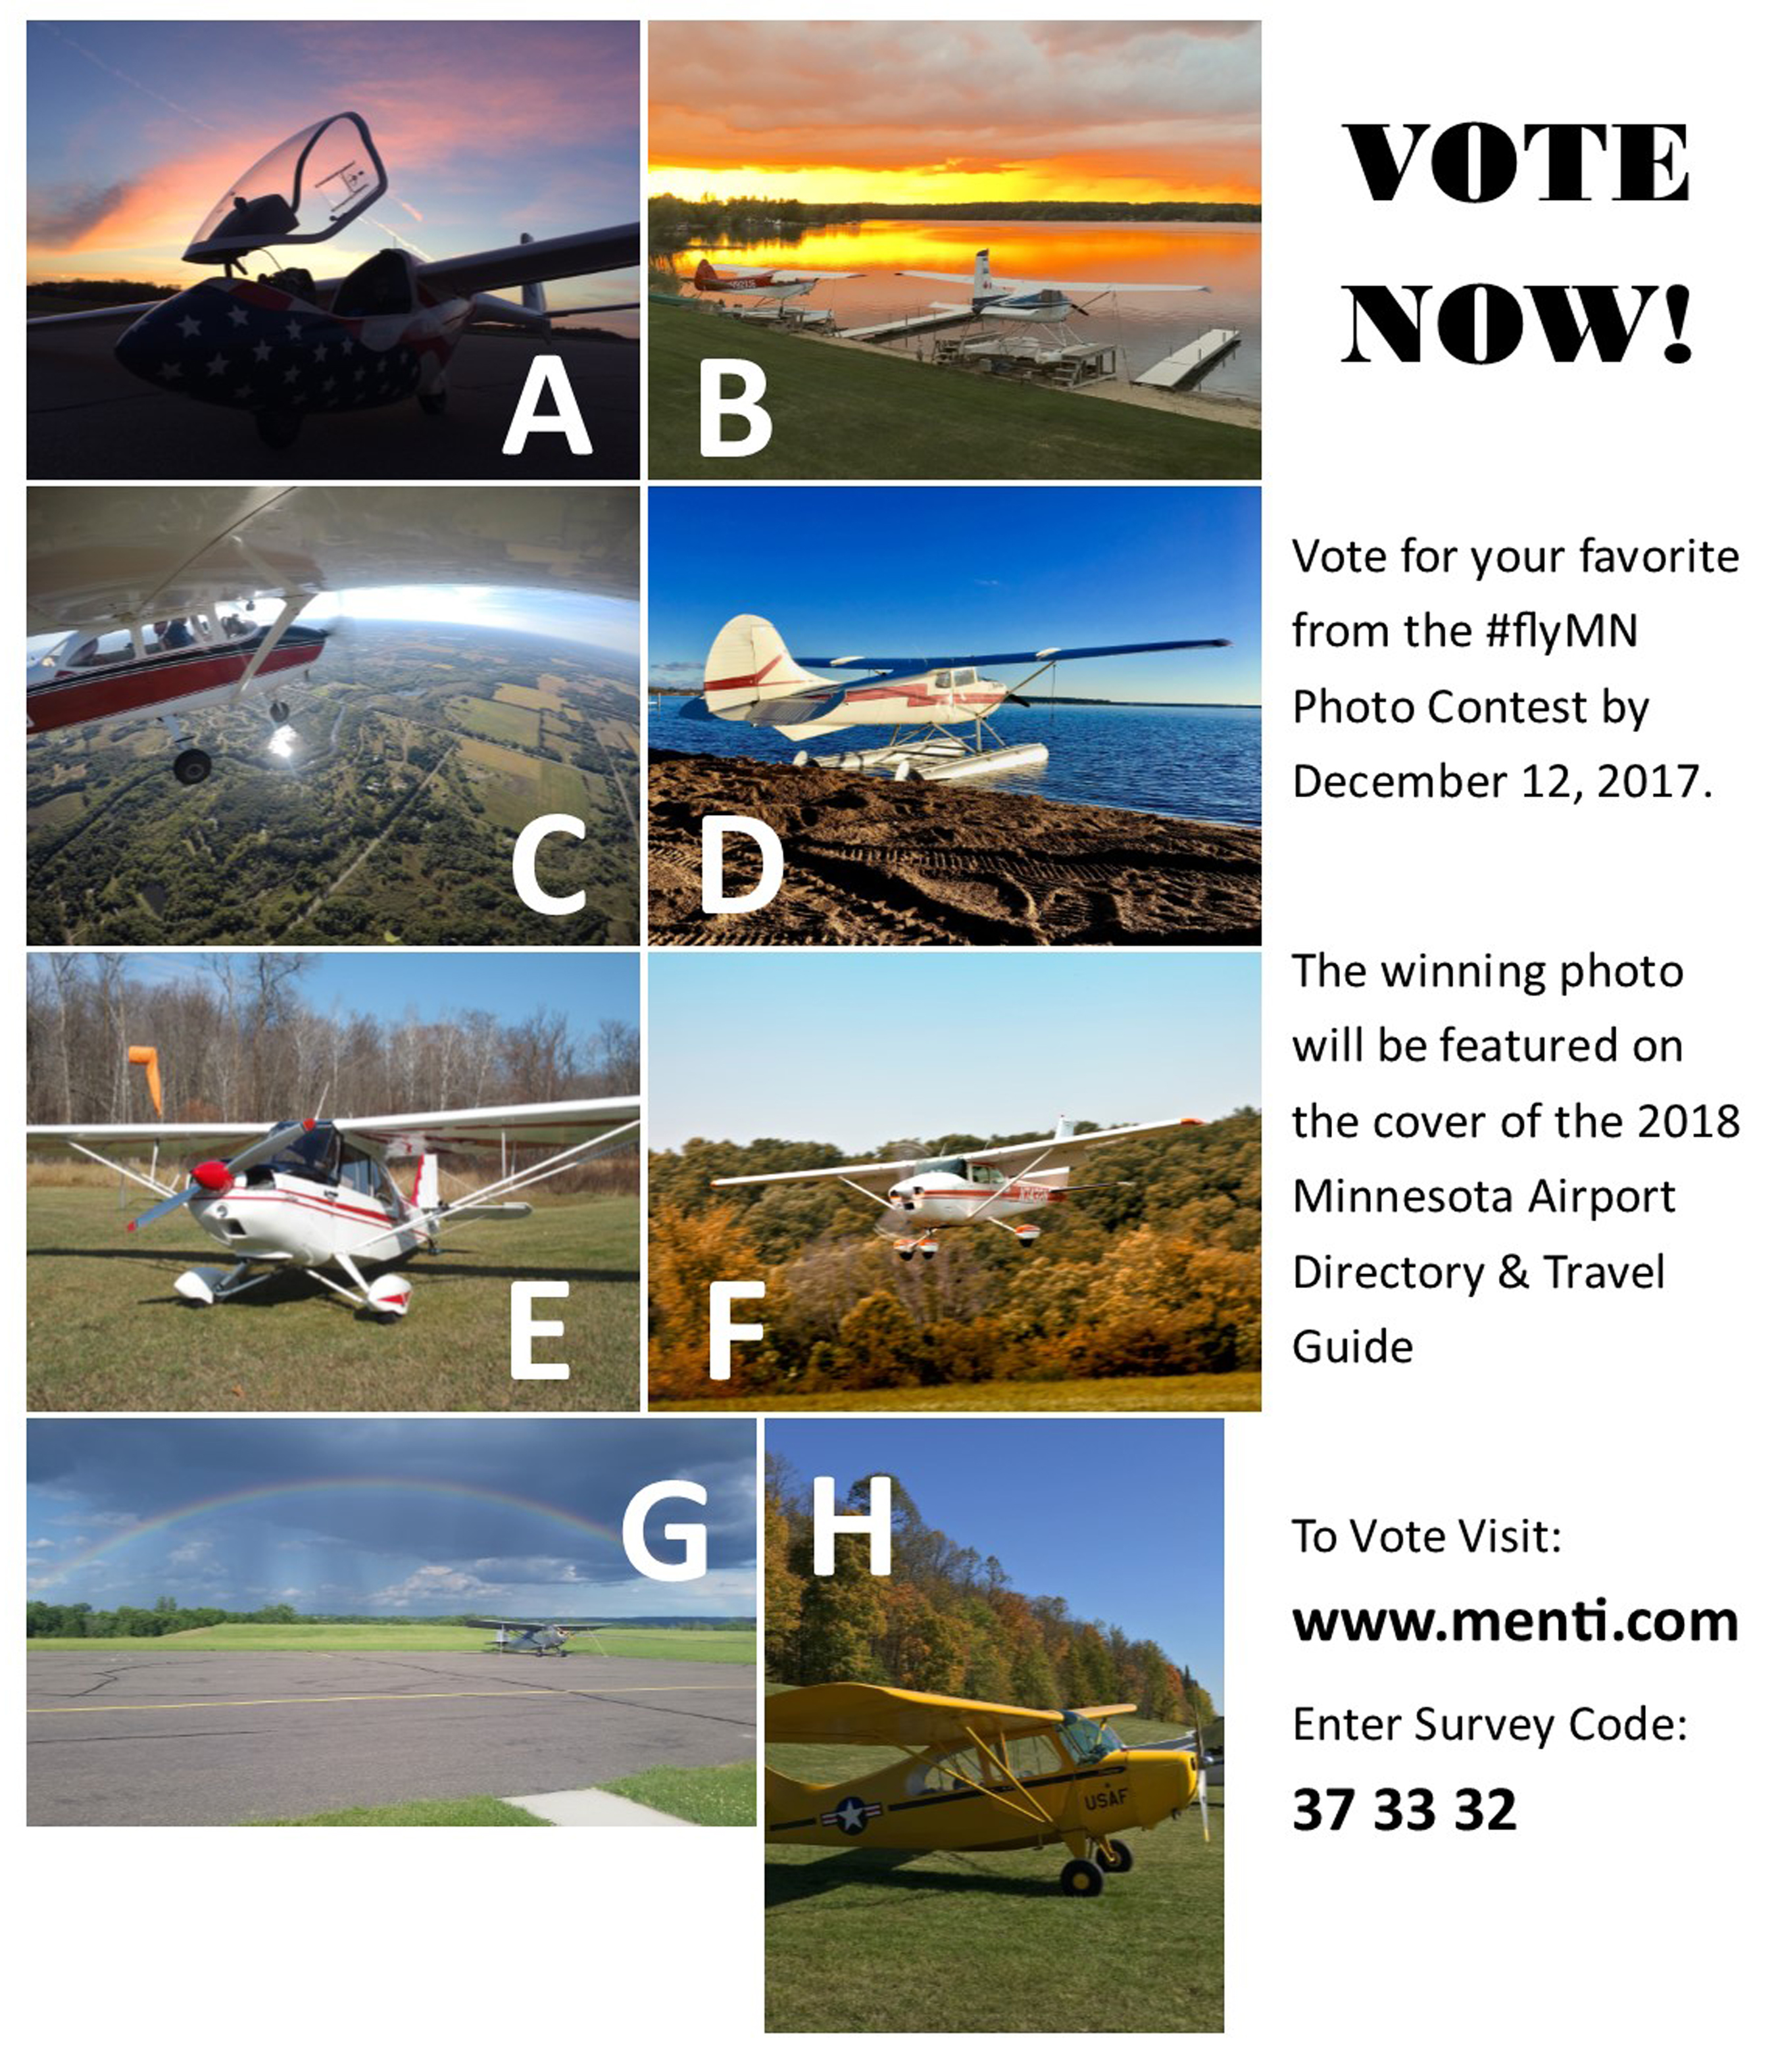 Fly Minnesota voting contest flyer